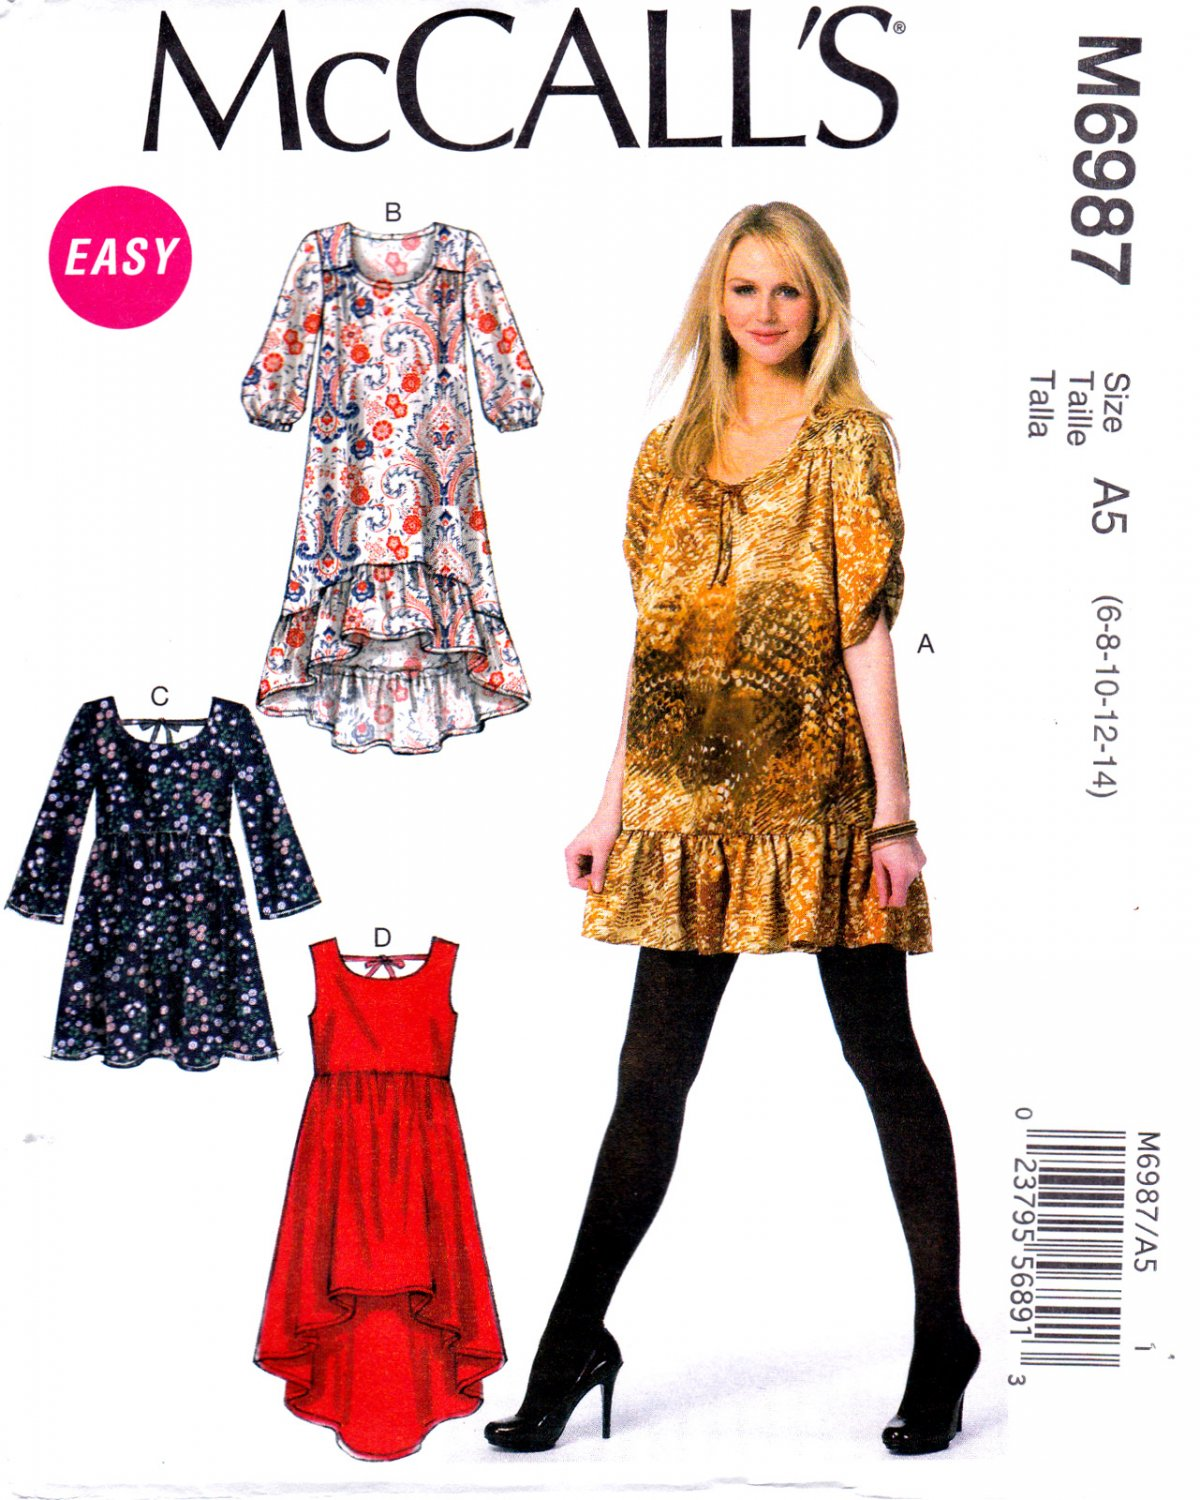 a4f095cae2e McCall s M6987 6987 Misses Pullover Dresses Sewing Pattern Sizes 6-8-10-12-14  Easy Sew